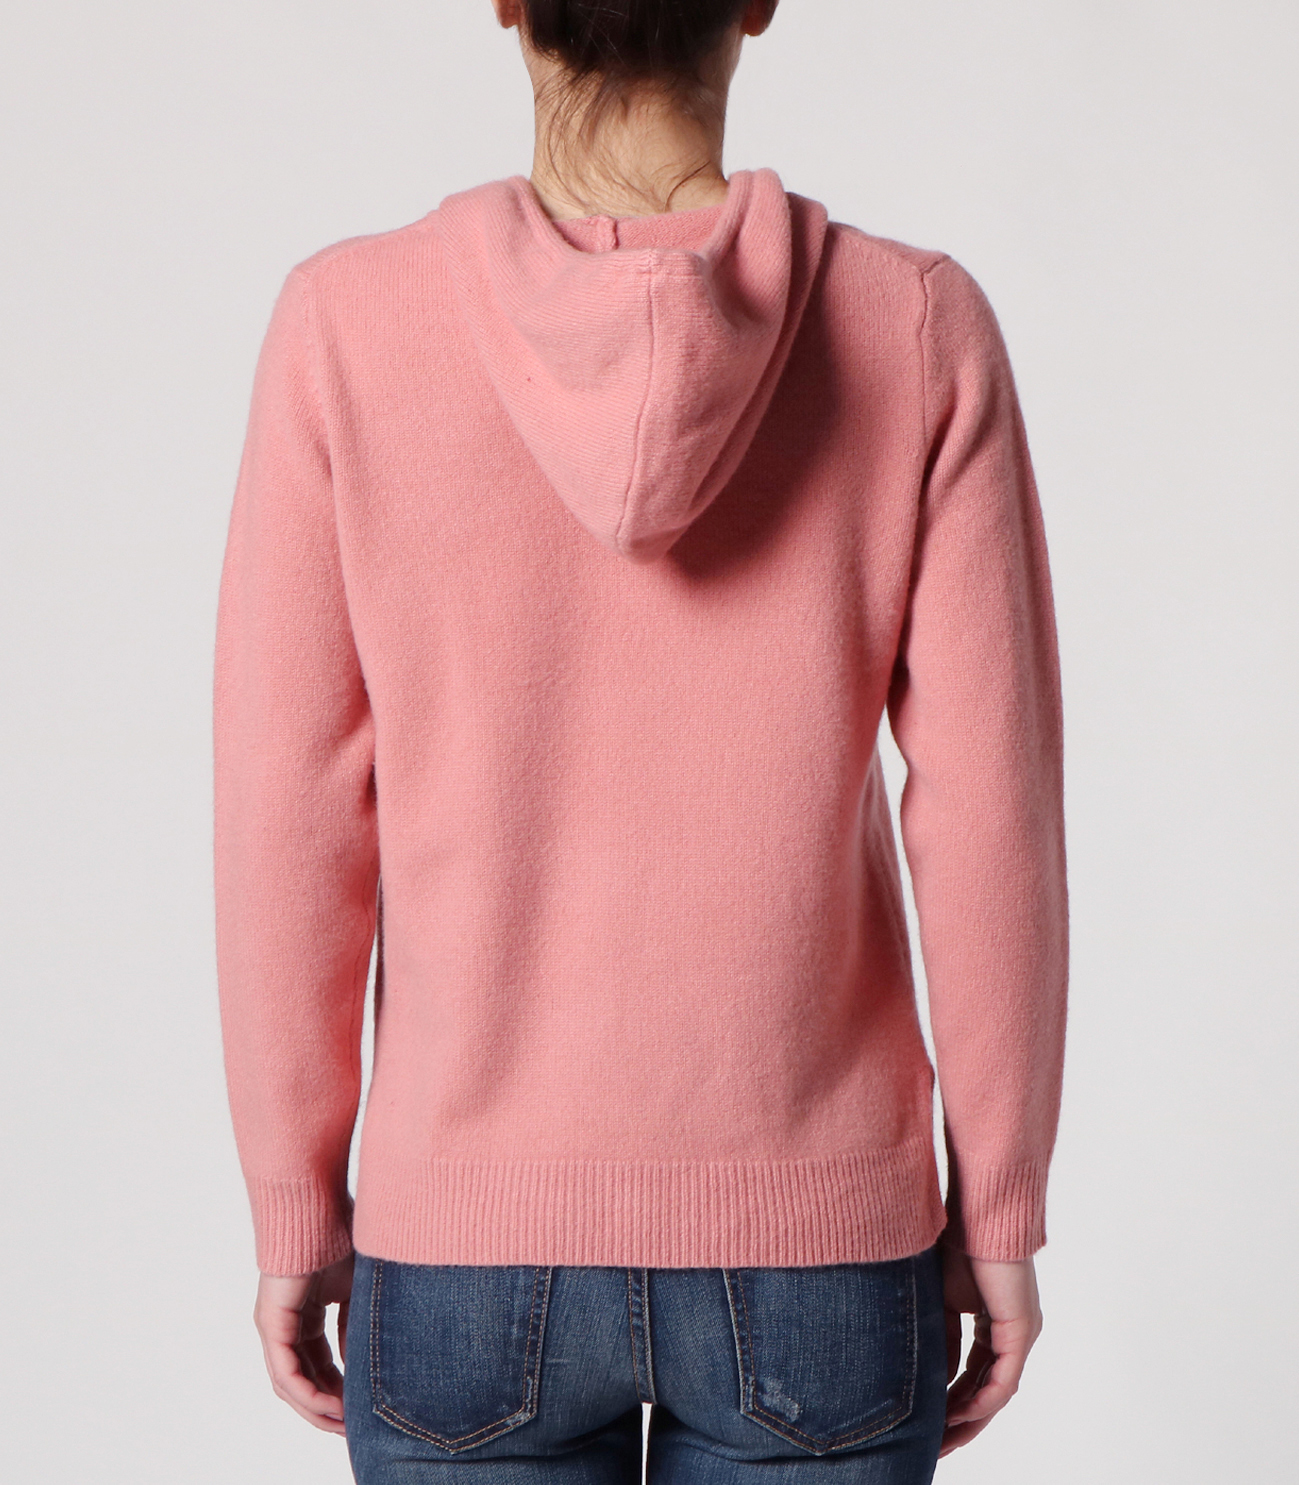 lt smooth wool hooded pullover 詳細画像 dusty rose 4